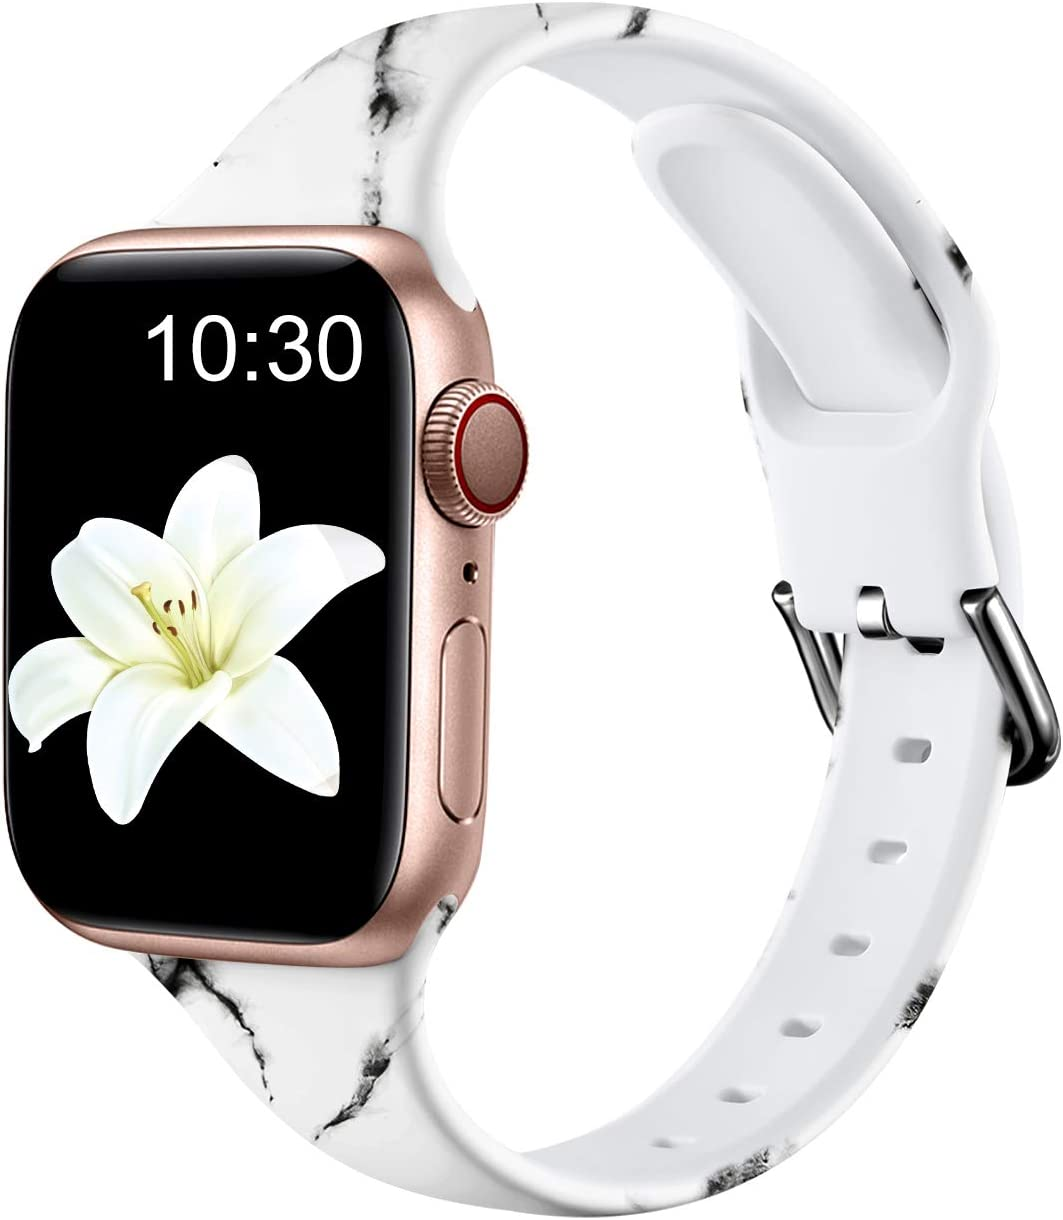 Nofeda Bands Compatible with Apple Watch Band 38mm 40mm iWatch Series 6 5 4 3 2 1 & SE, Slim Silicone Printed Fadeless Replacement Strap Band for Women Men, White Marble